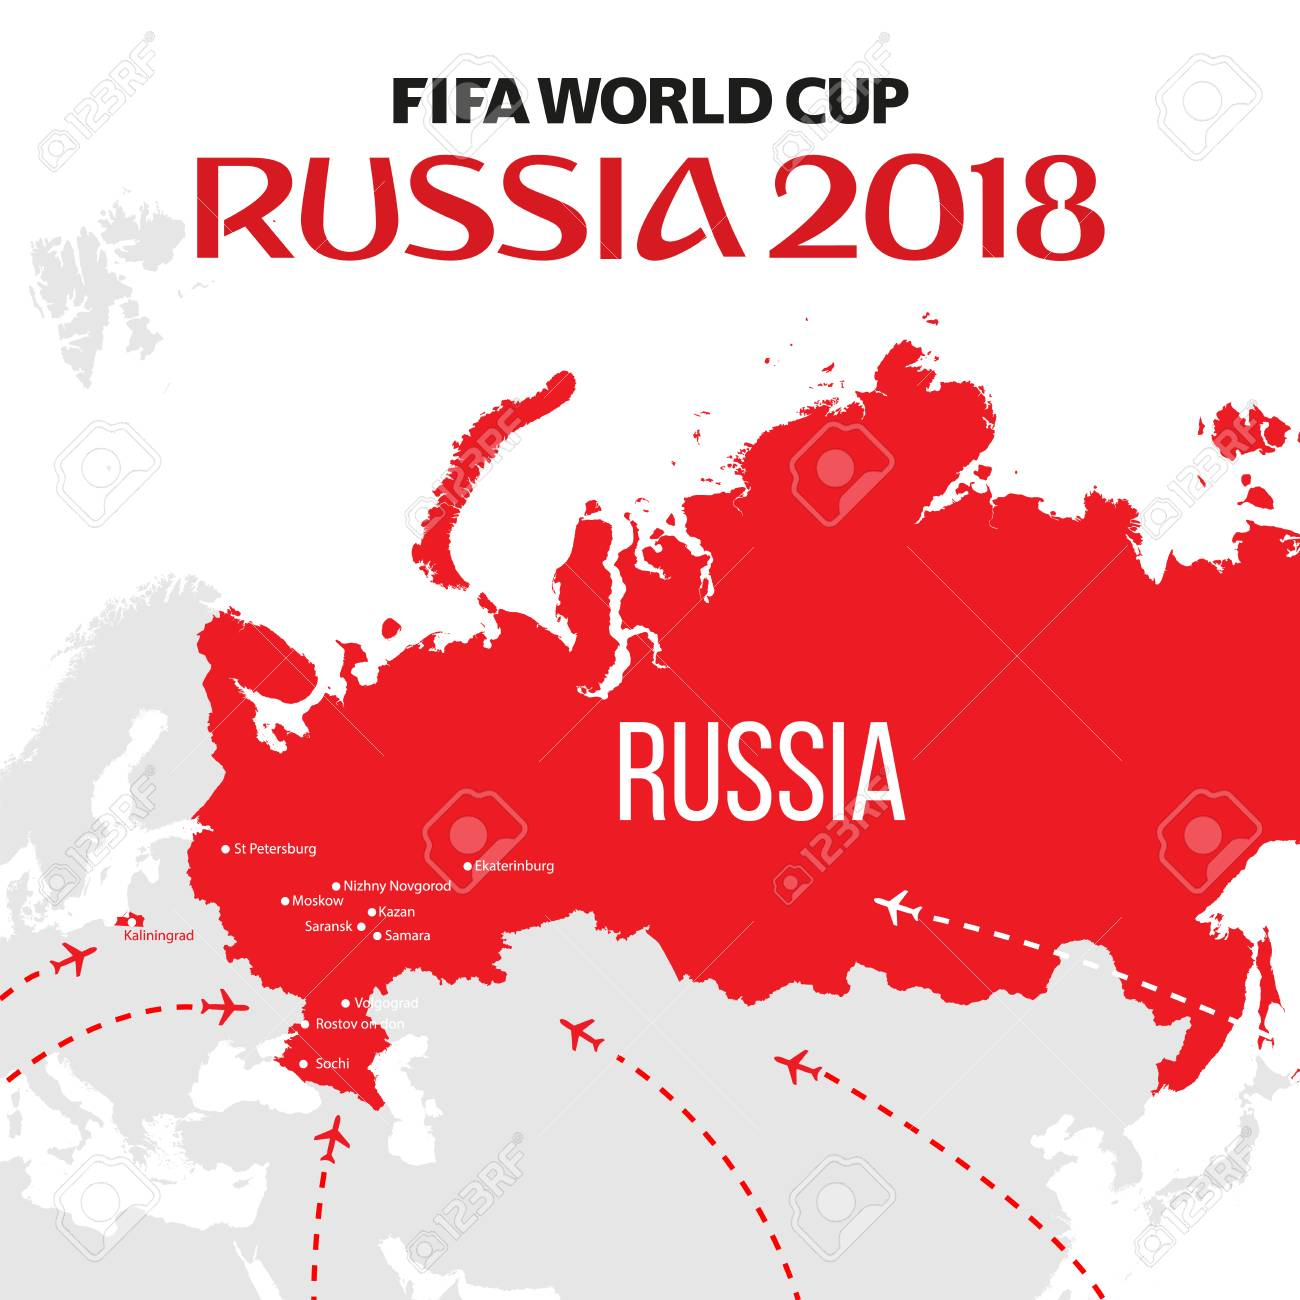 Russia world cup 2018 vector illustration with map and cities russia world cup 2018 vector illustration with map and cities of championship stock vector 96519210 gumiabroncs Gallery